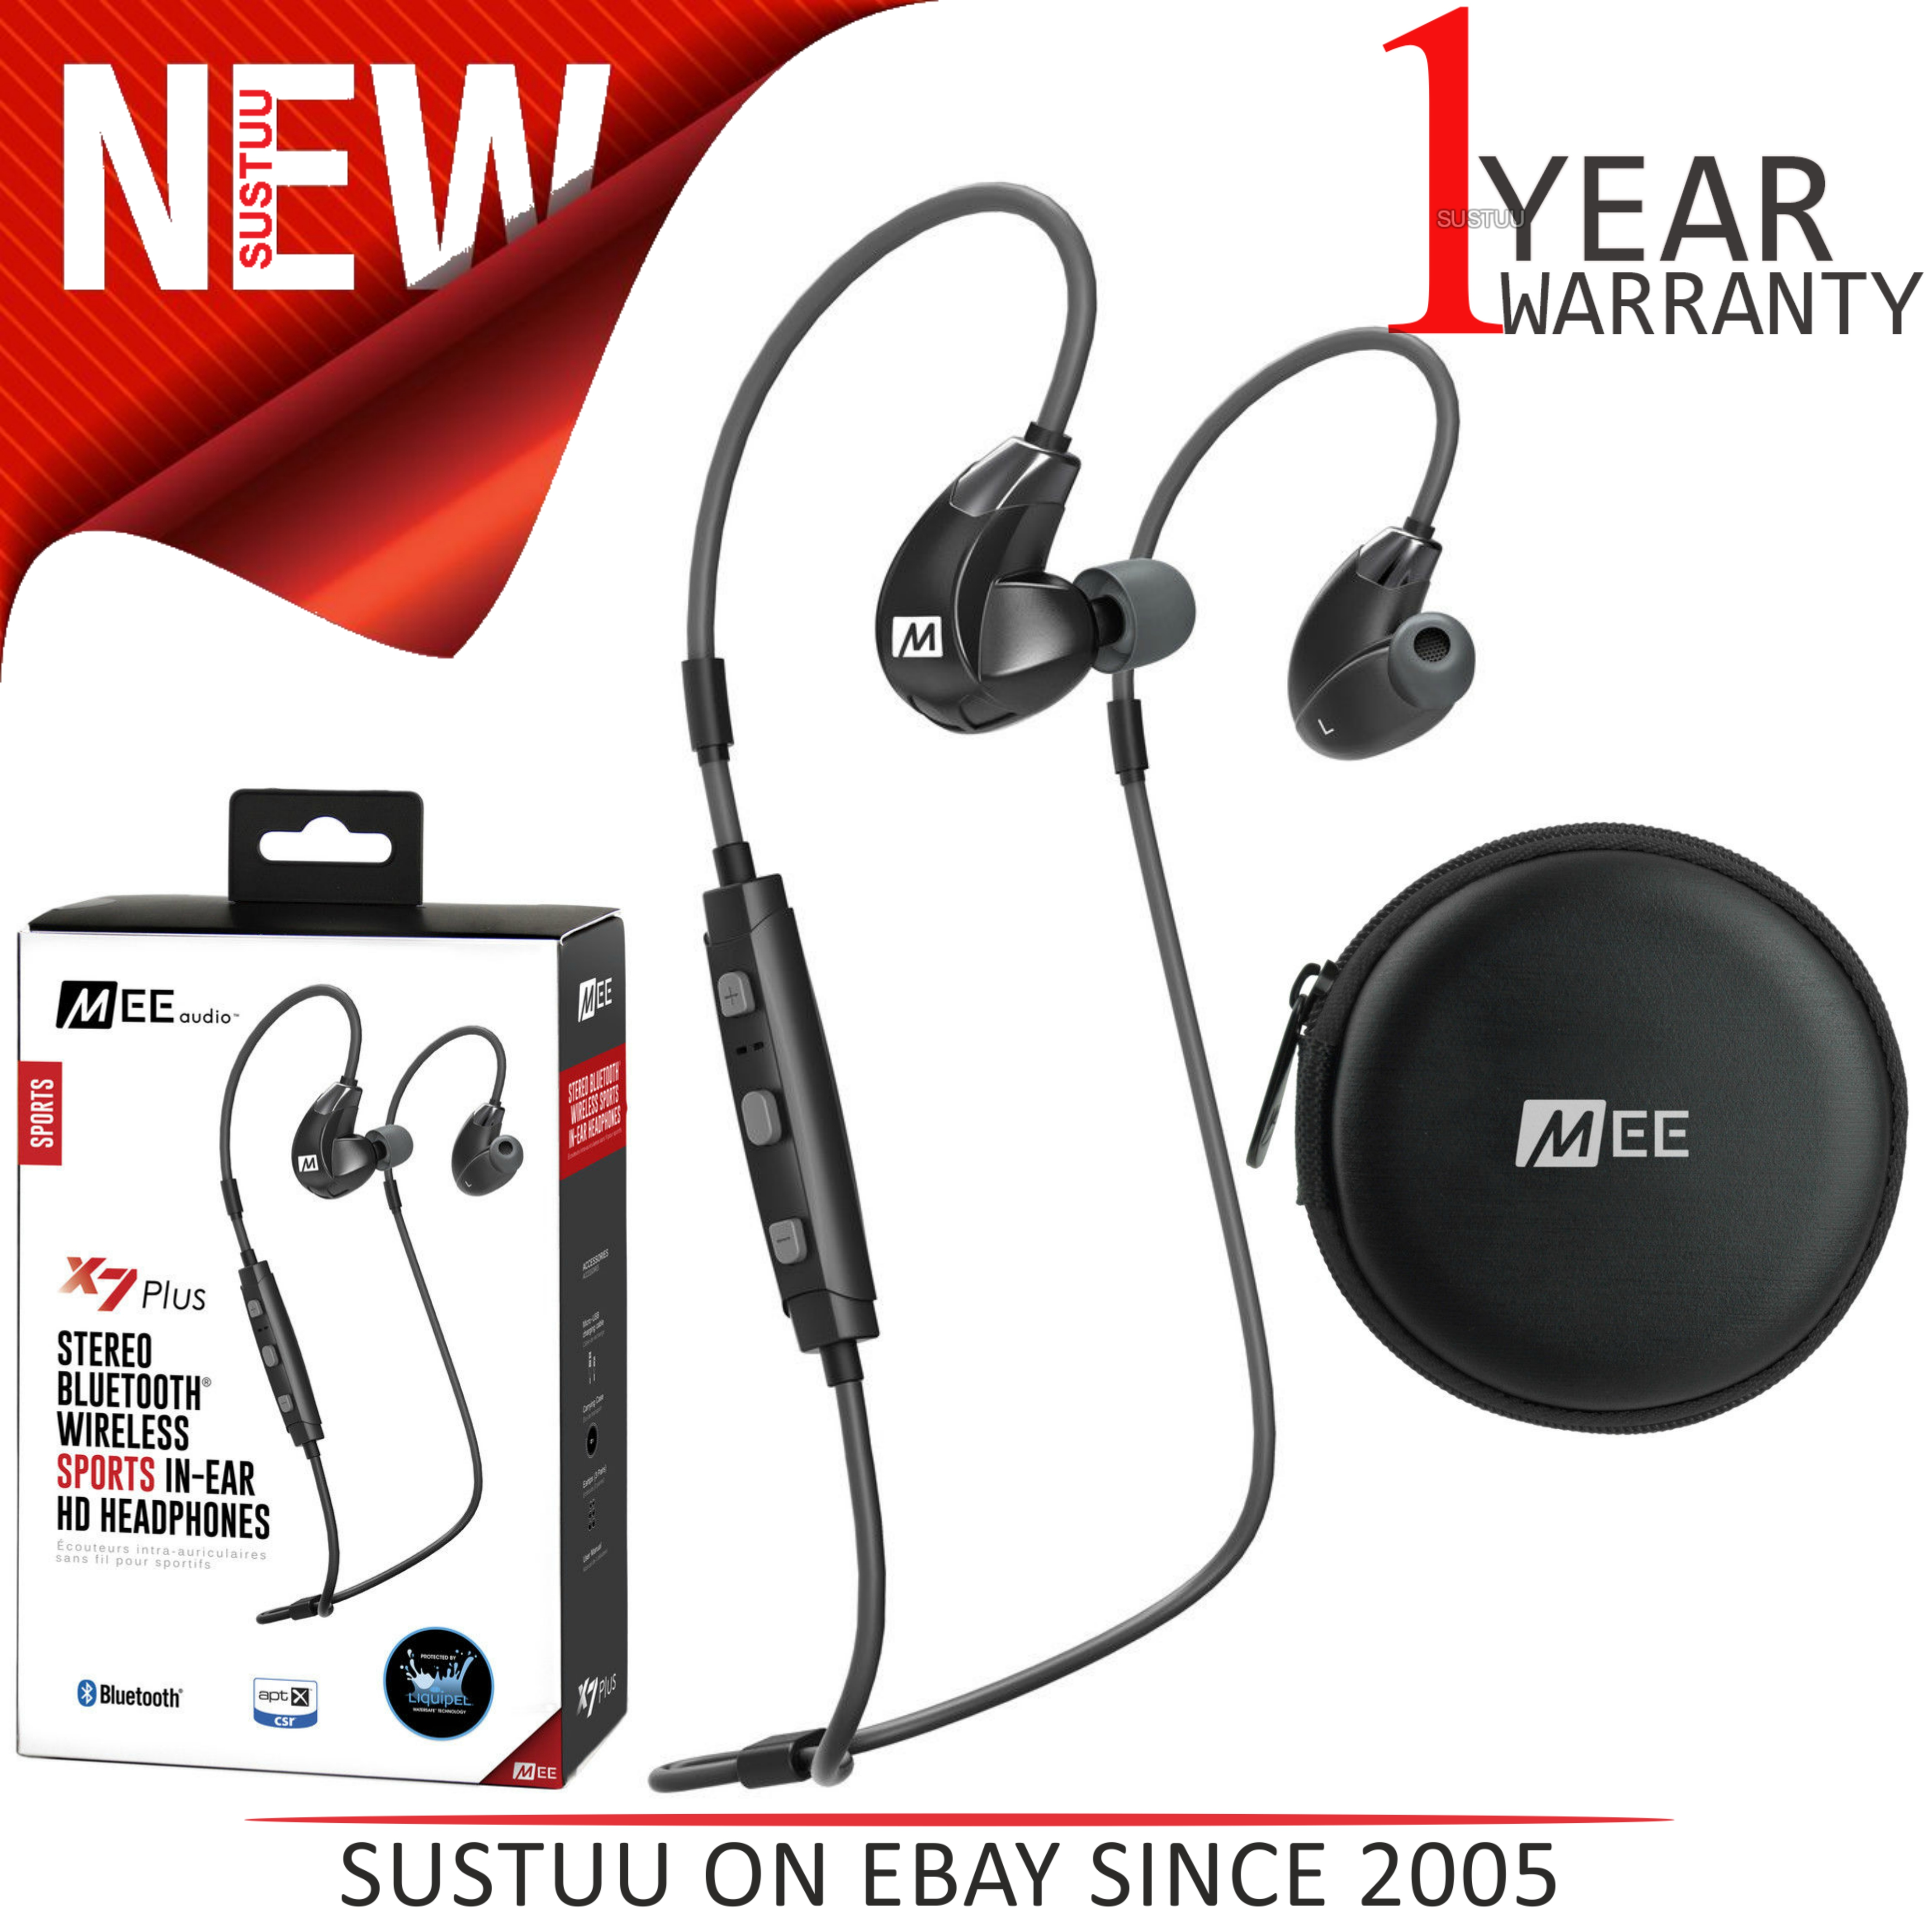 83cefd6e1c9 Details about MEE Audio X7 Plus In-Ear Stereo Bluetooth Wireless Sports  Headphone│Memory Wire